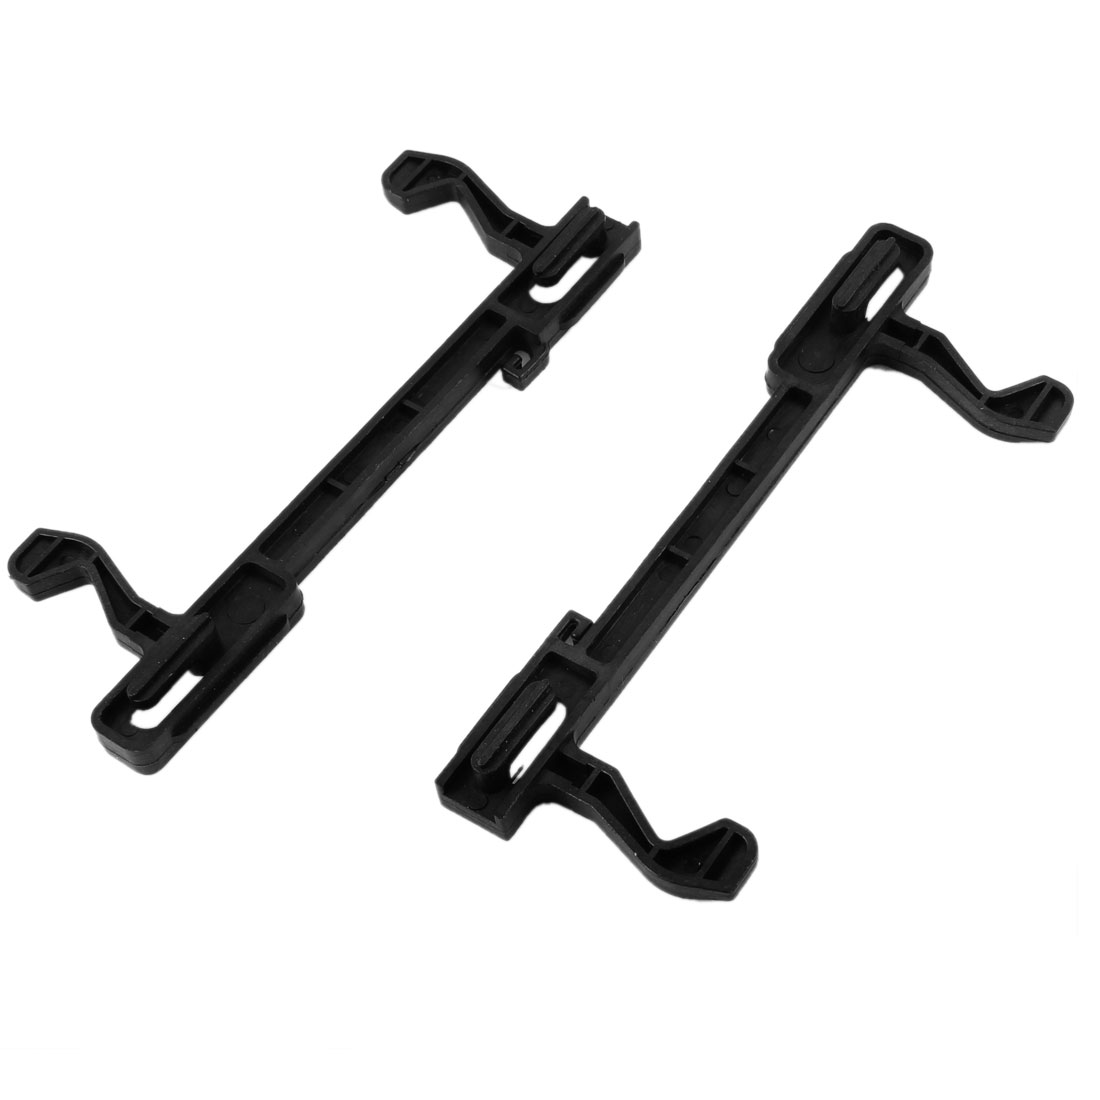 "Kitchen Black Plastic Microwave Oven Door Latch 5.2"" Long 2 Pcs for Haier"